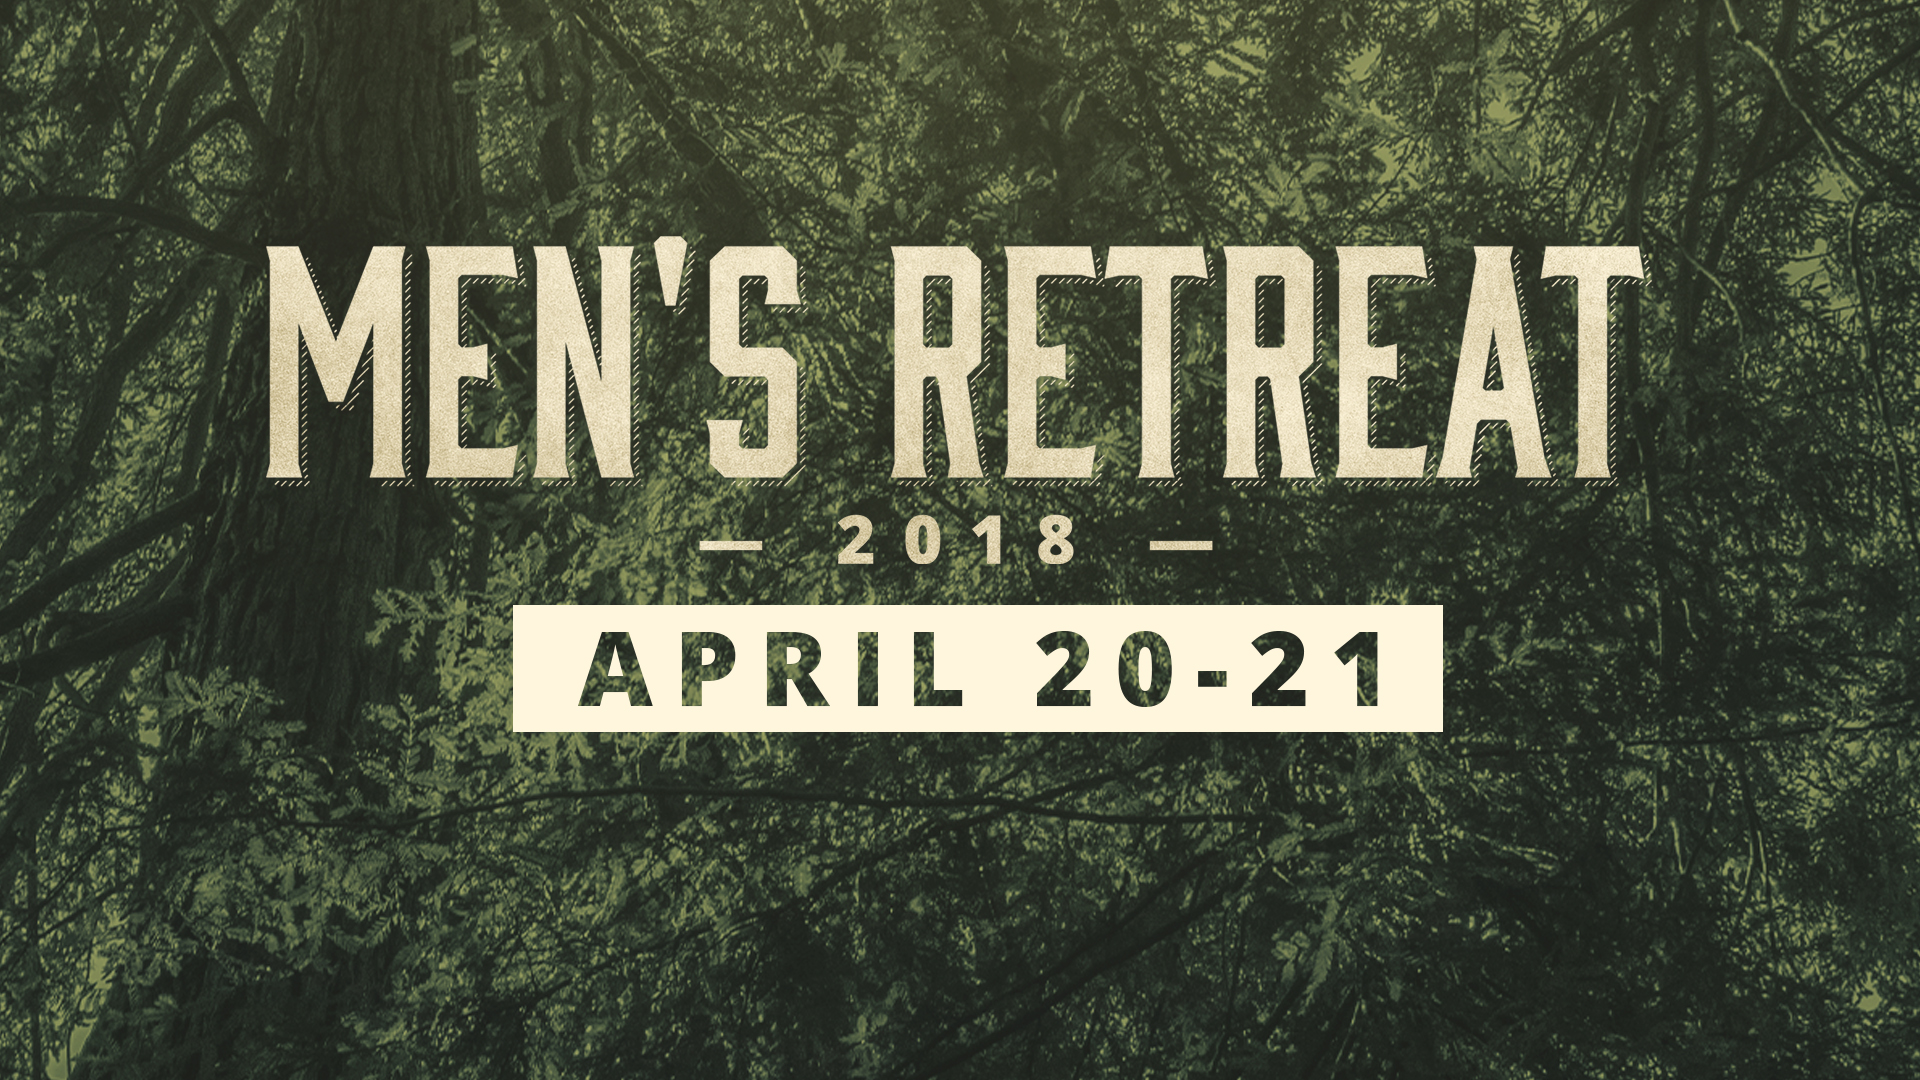 Men sretreat